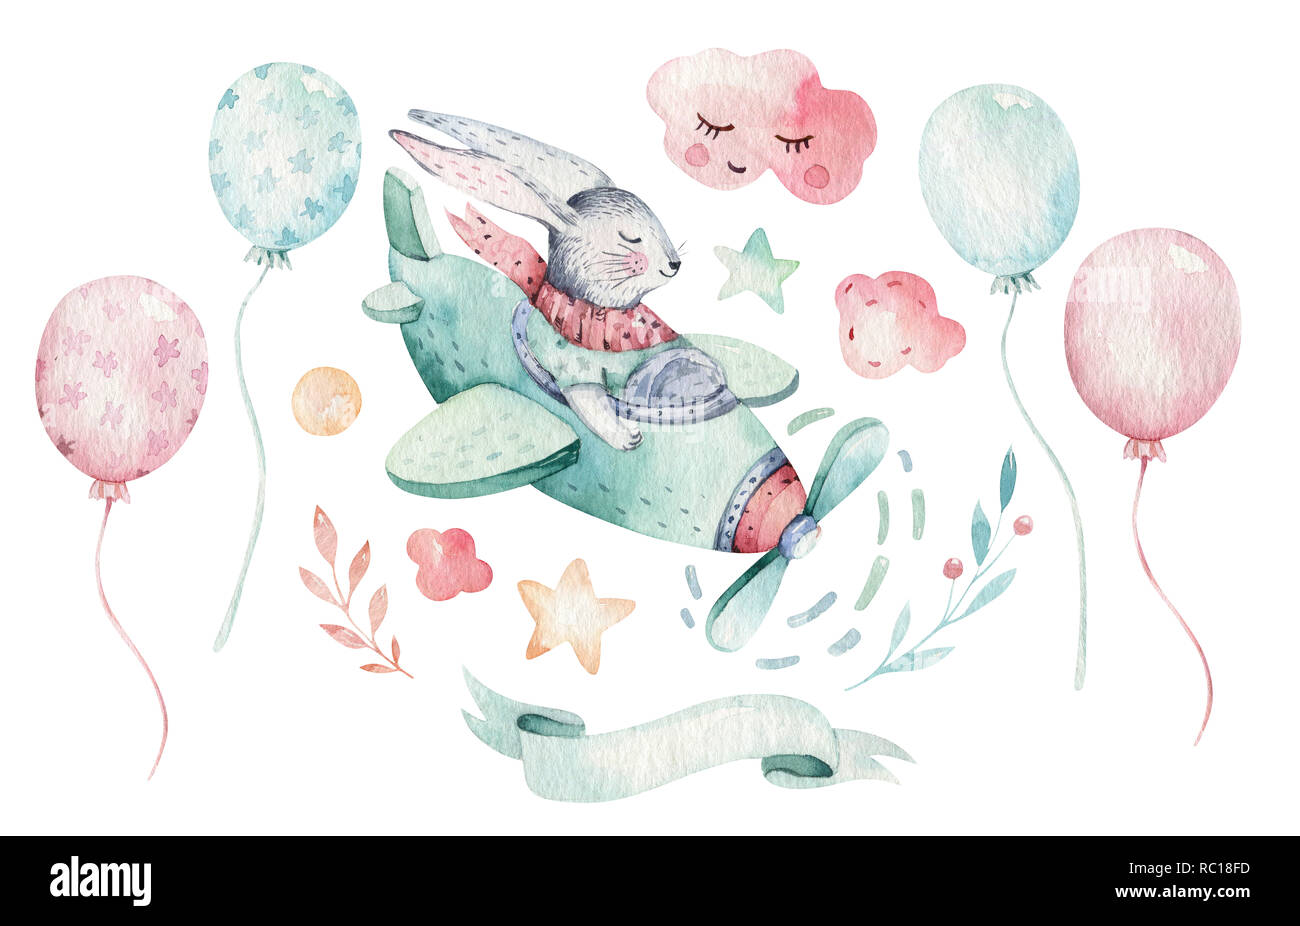 Hand Drawing Fly Cute Easter Pilot Bunny Watercolor Cartoon